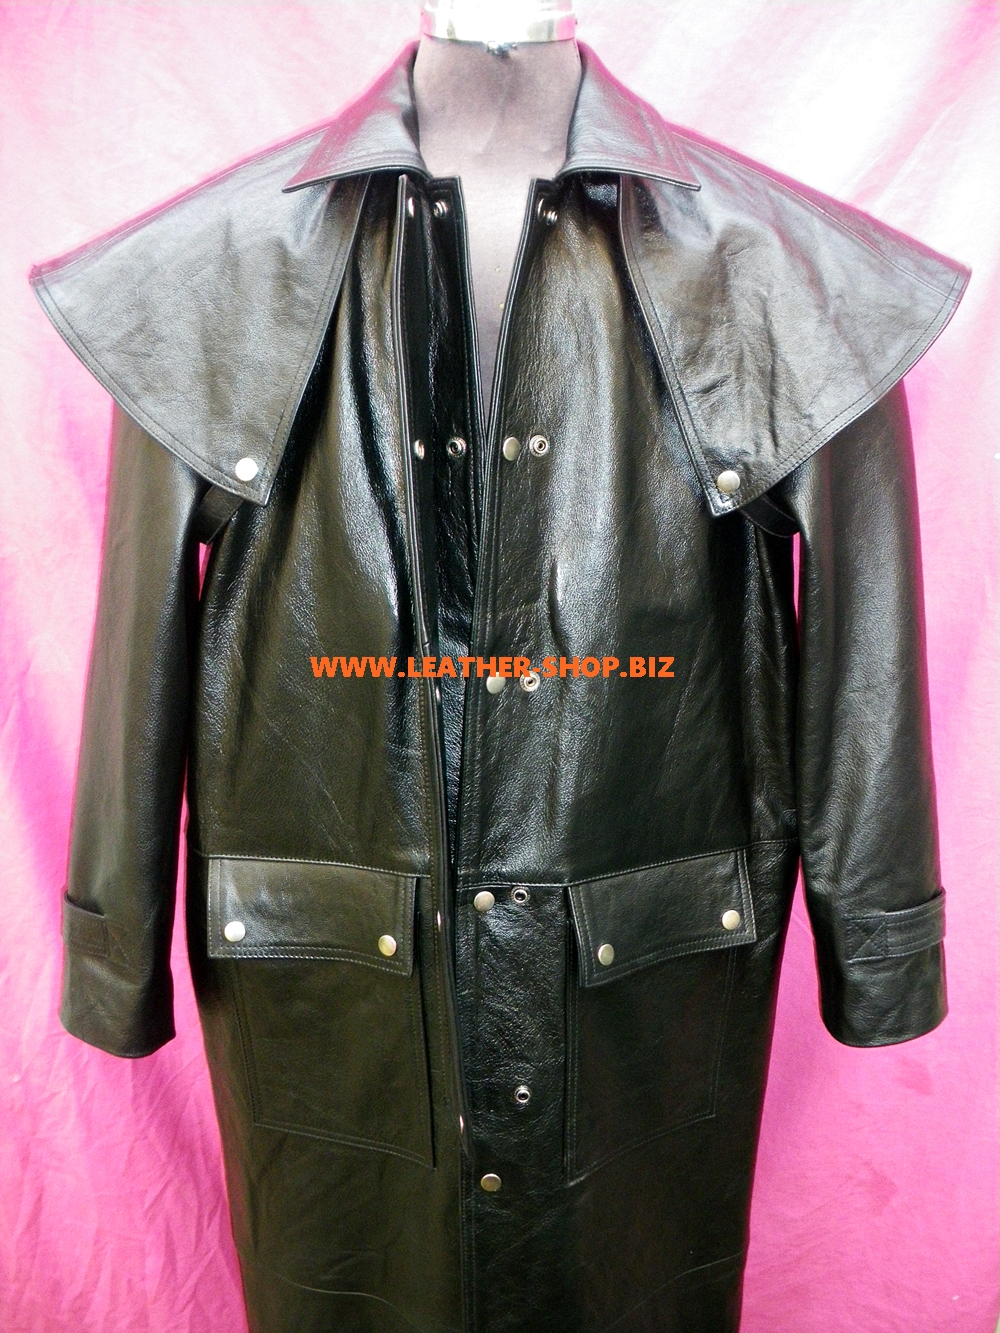 men-s-leather-duster-trench-coat-custom-made-style-mtc550-www.leather-shop.biz-front-unsnapped-image.jpg